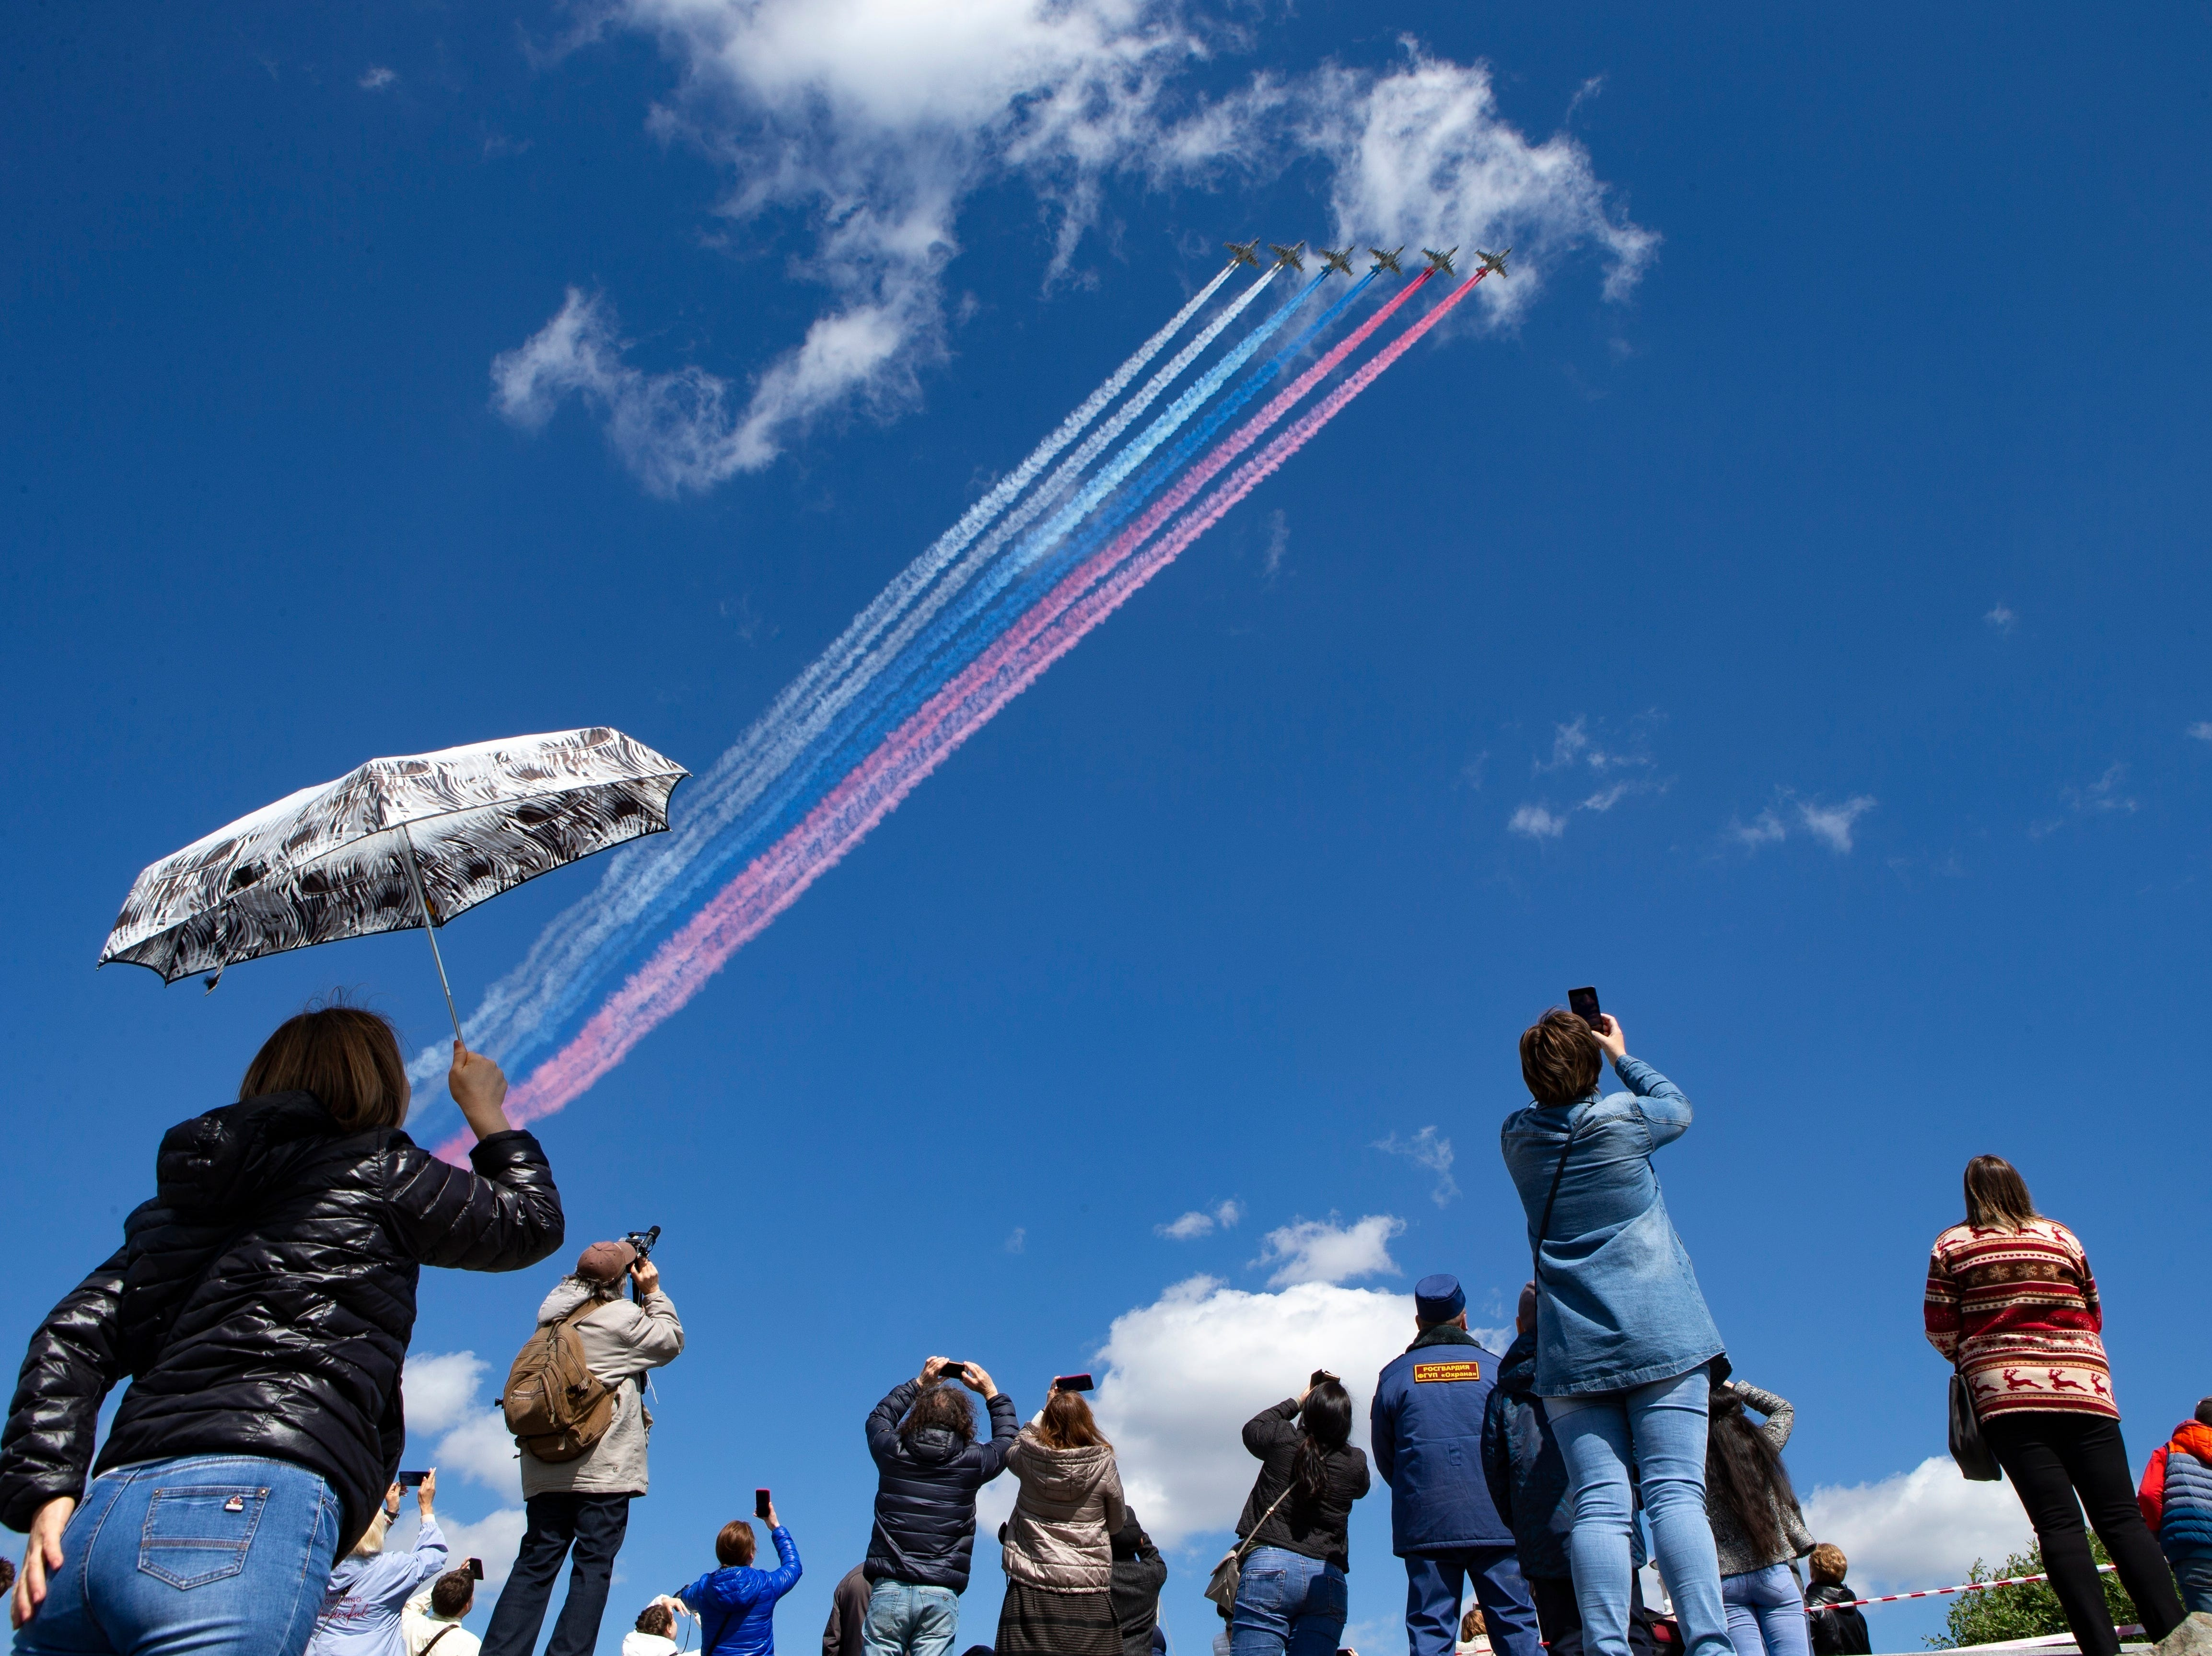 Tourists watch and photograph Russian Air Force jets flying over Red Square during a rehearsal for the Victory Day military parade in Moscow, Russia, on Saturday, May, 4, 2019. The parade will take place at Moscow's Red Square on May 9 to celebrate 74 years of the victory in WWII.